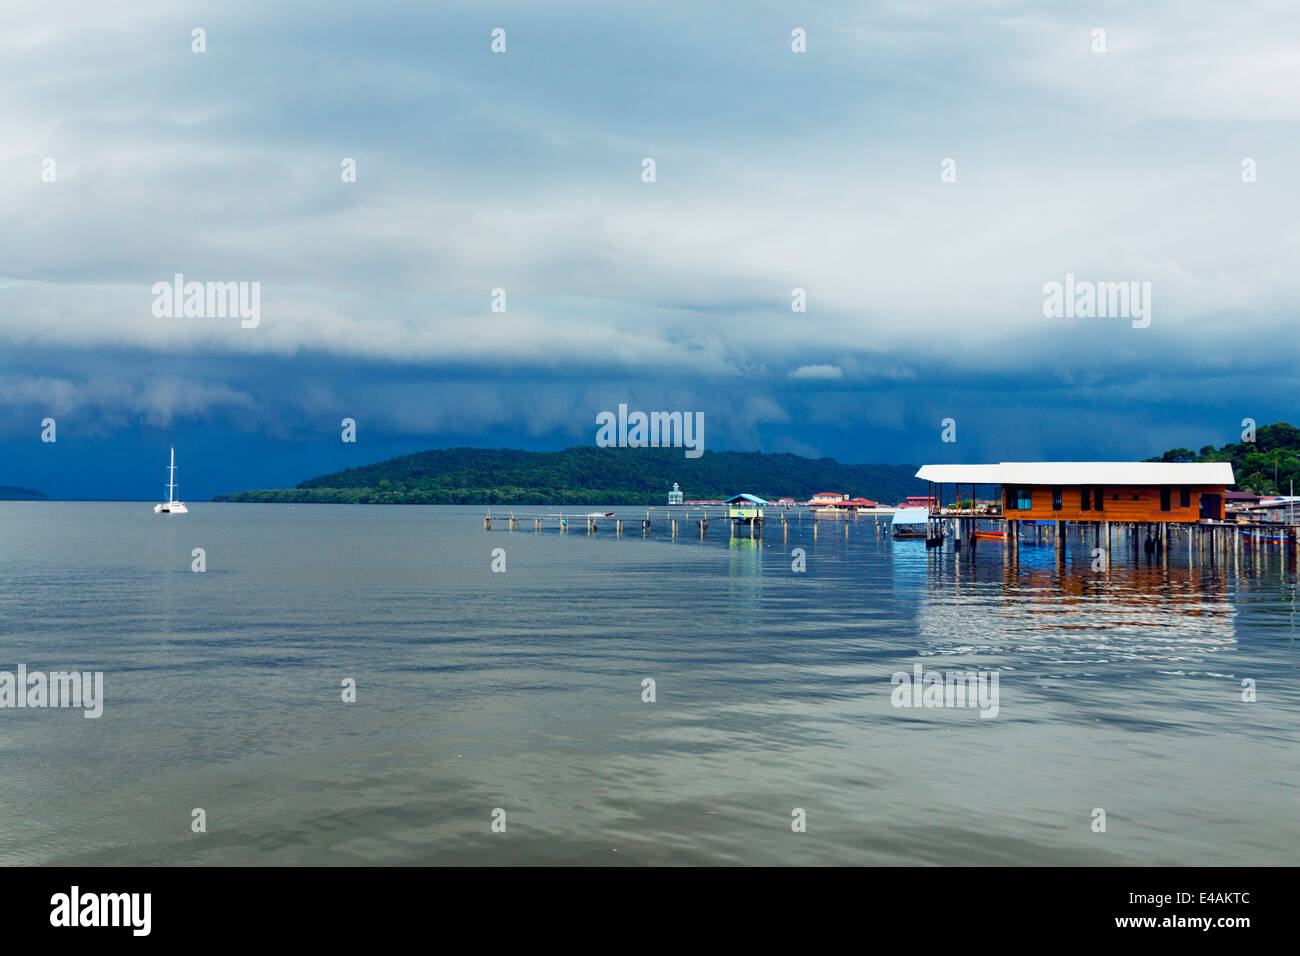 South East Asia, Kingdom of Brunei, Kampung Ayer water village - Stock Image